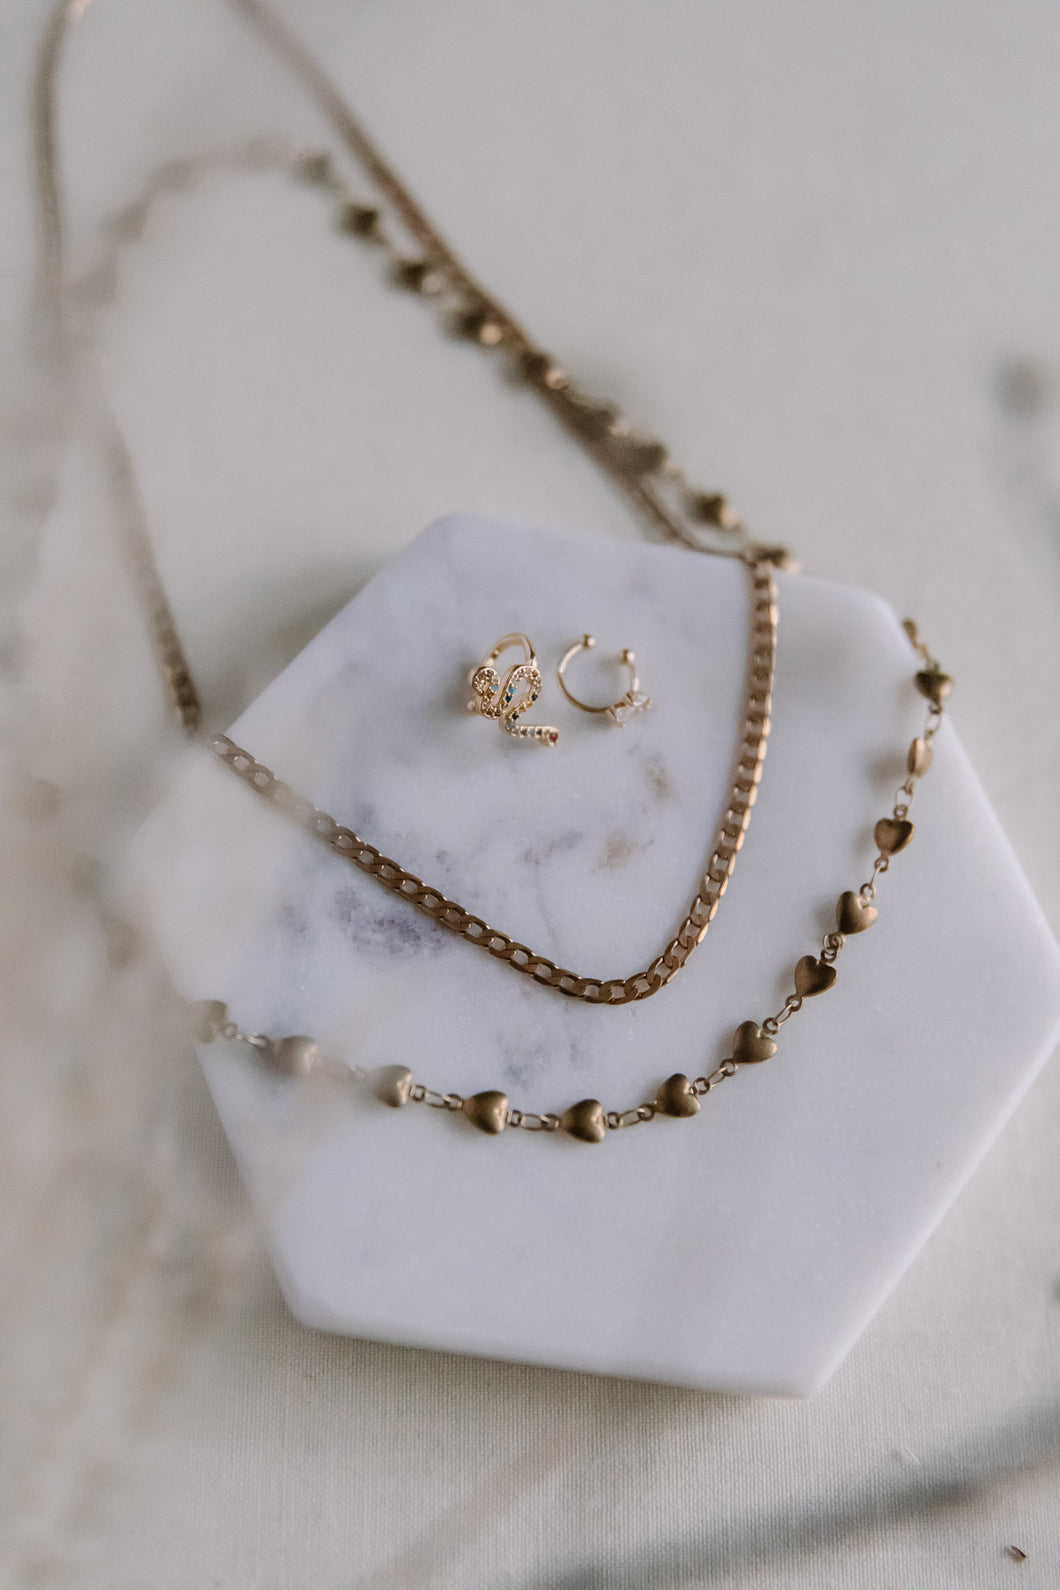 The wholehearted necklace //